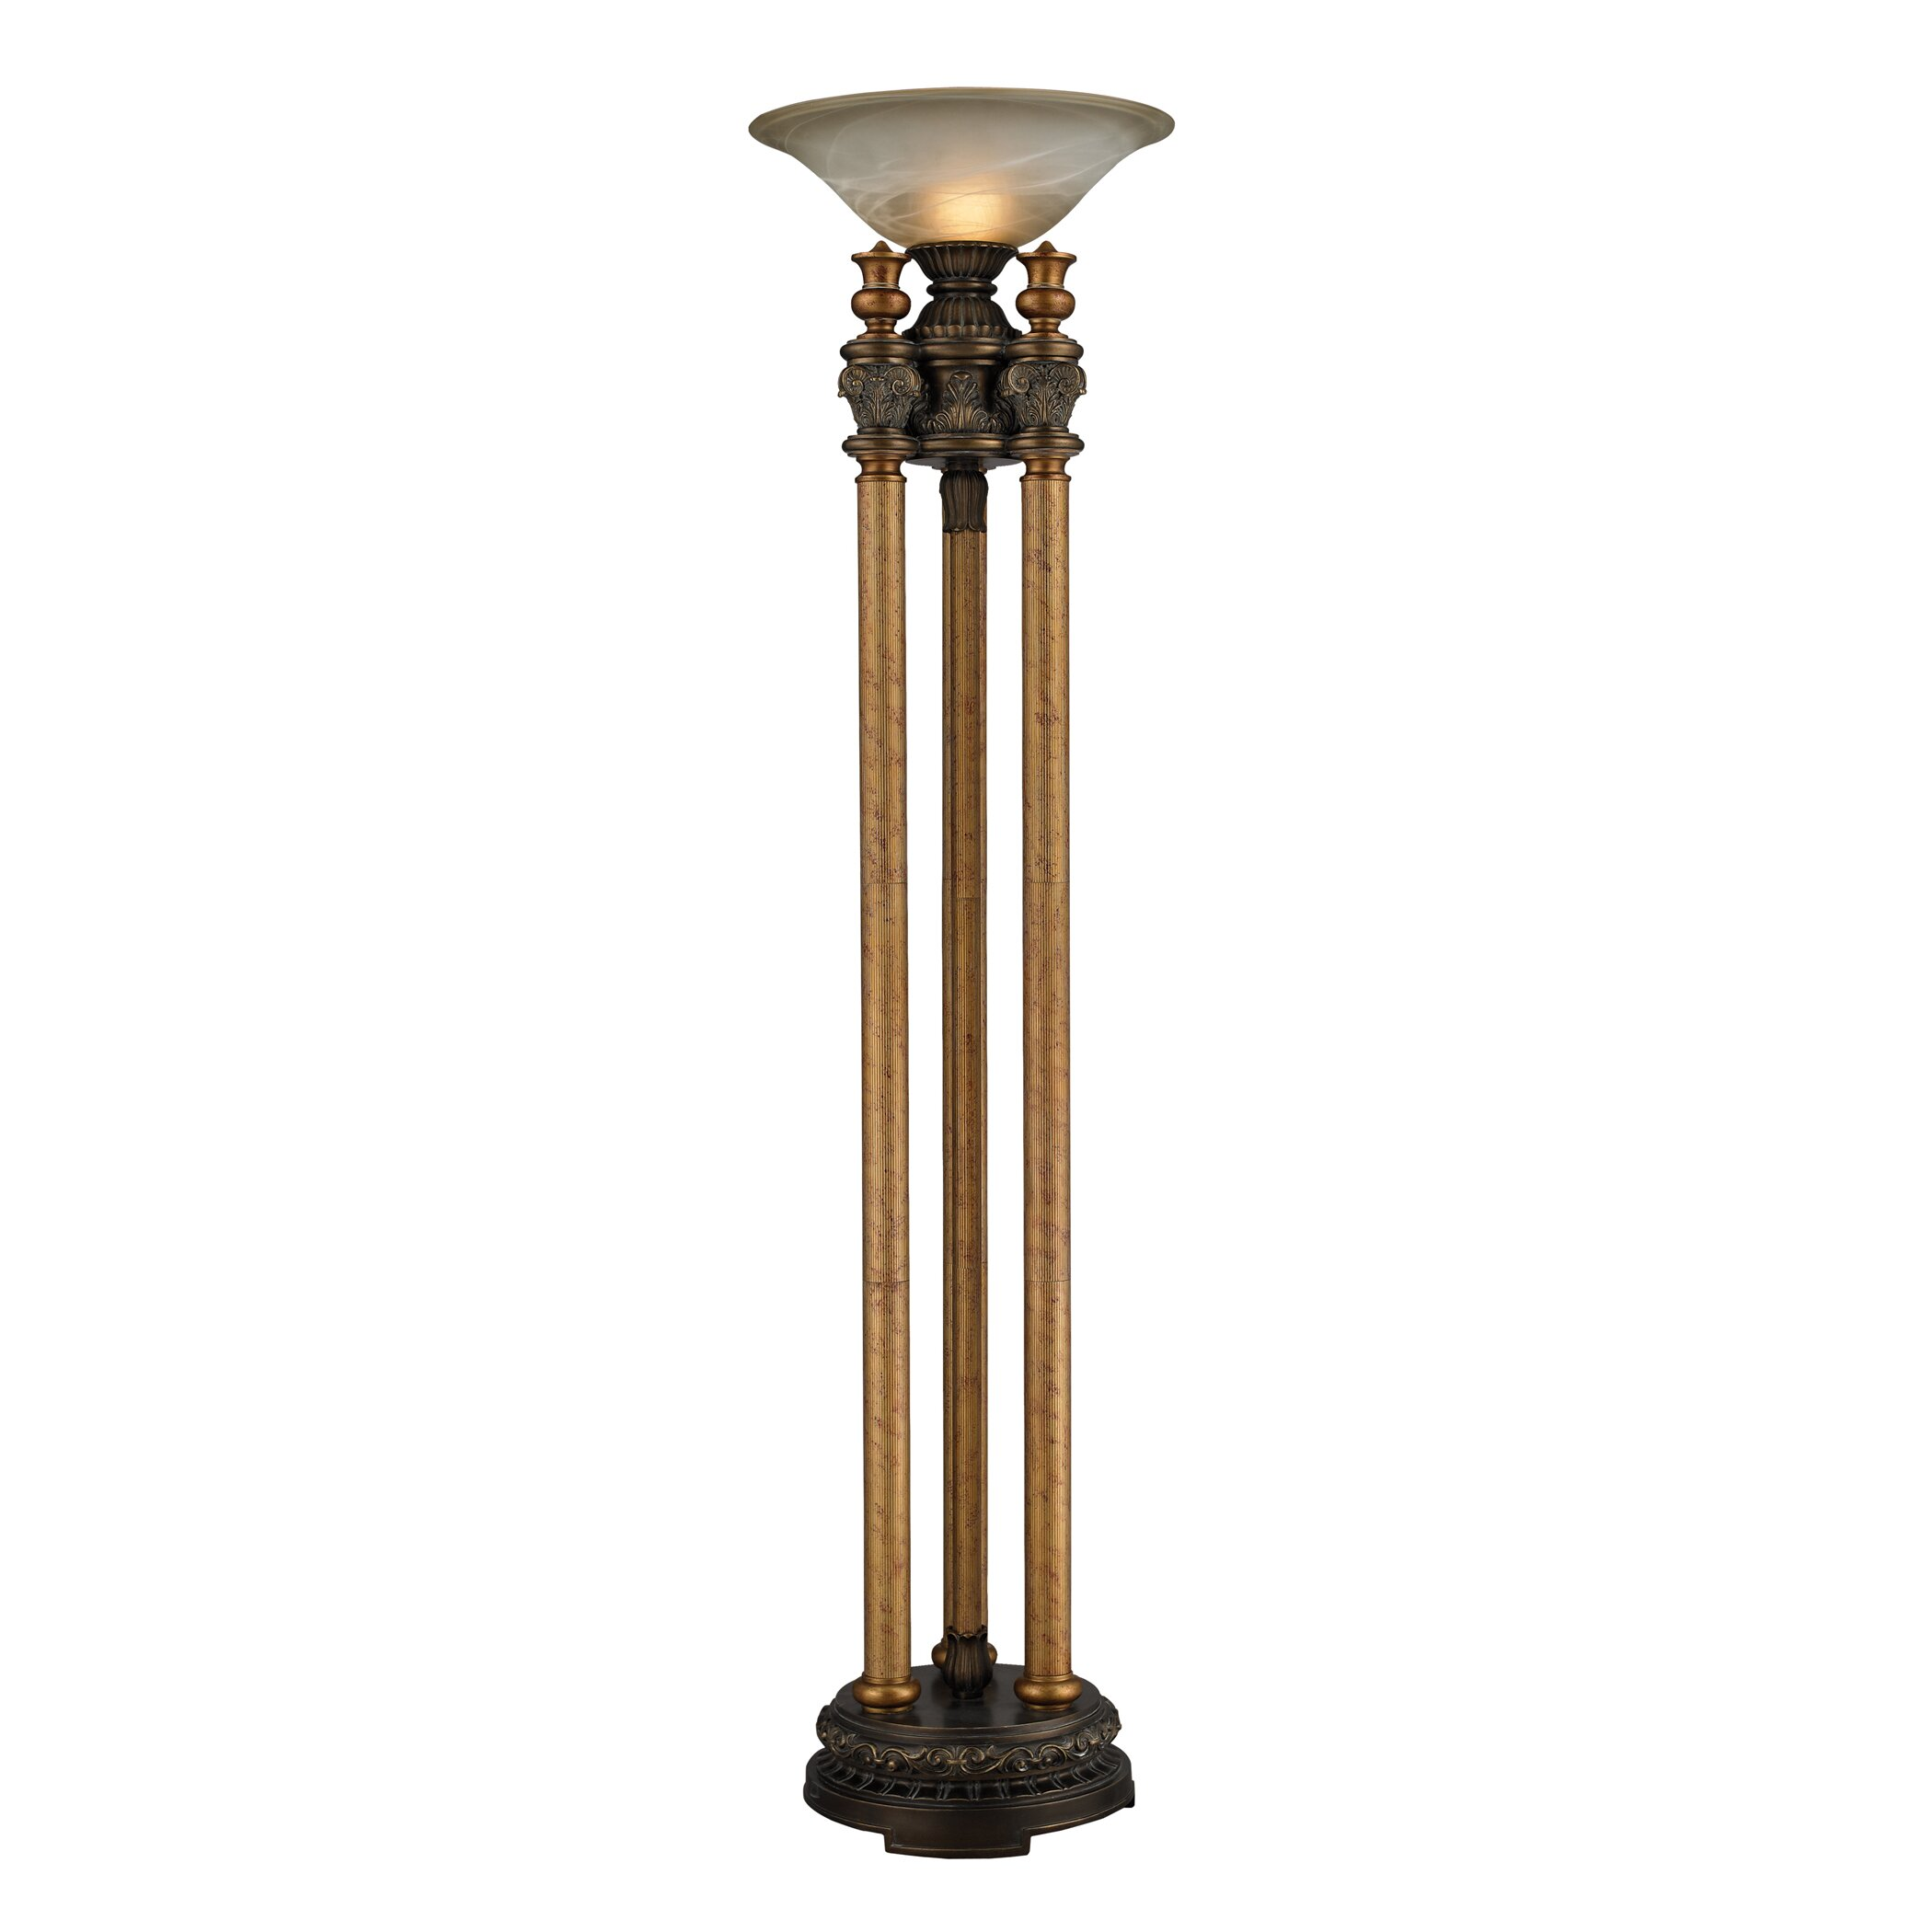 Athena 72u0026quot; Torchiere Floor Lamp : Wayfair